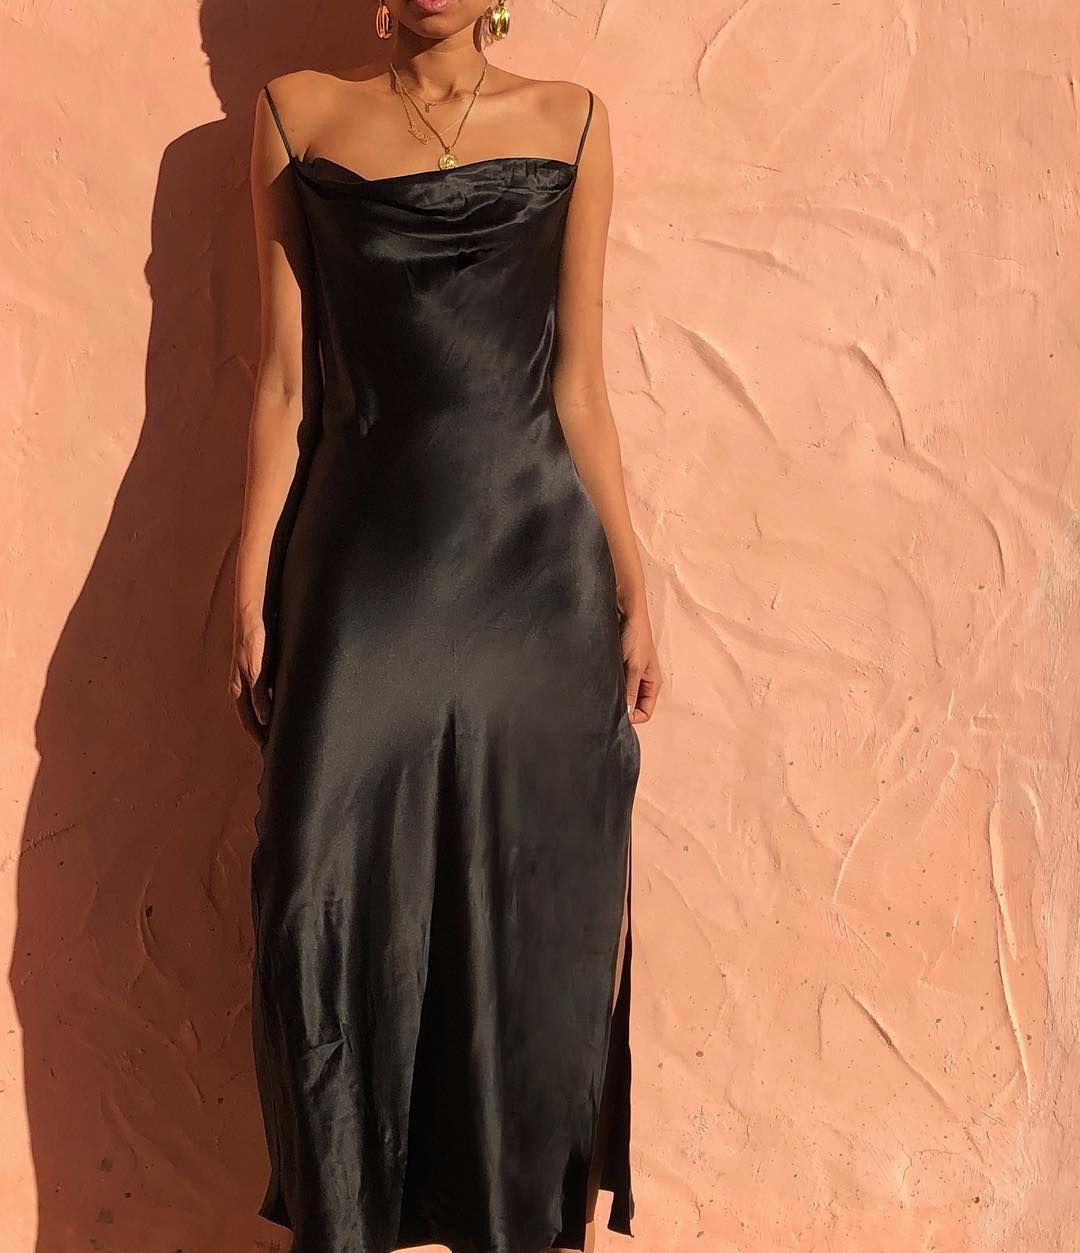 Beautiful 100 Silk Black Slip Dress With Open Back Same Style As Red Dress A Few Posts Back Size M L 125 Sold Silk Prom Dress Black Slip Dress Slip Dress [ 1253 x 1080 Pixel ]